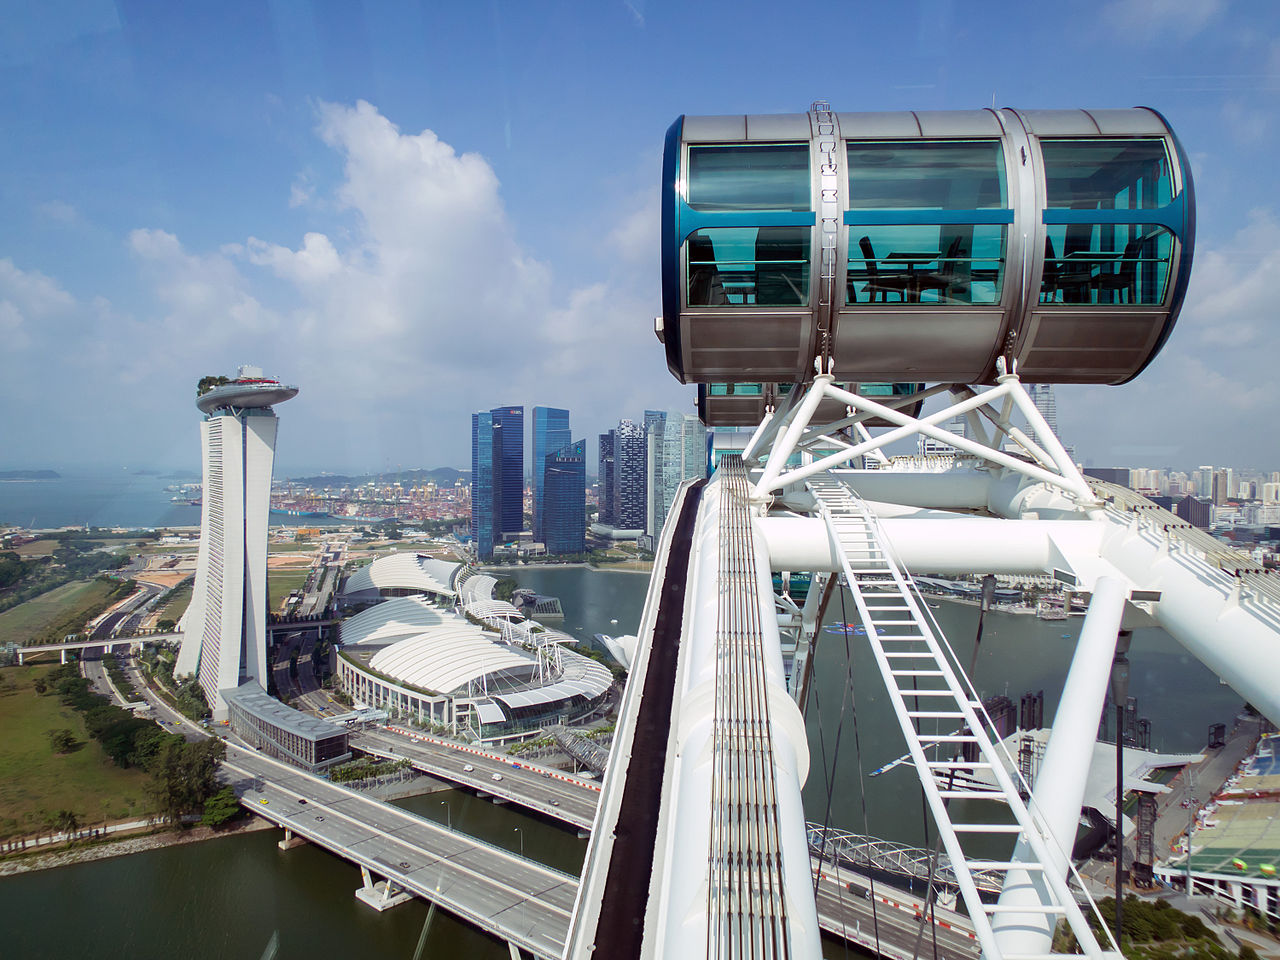 What to see in Singapore